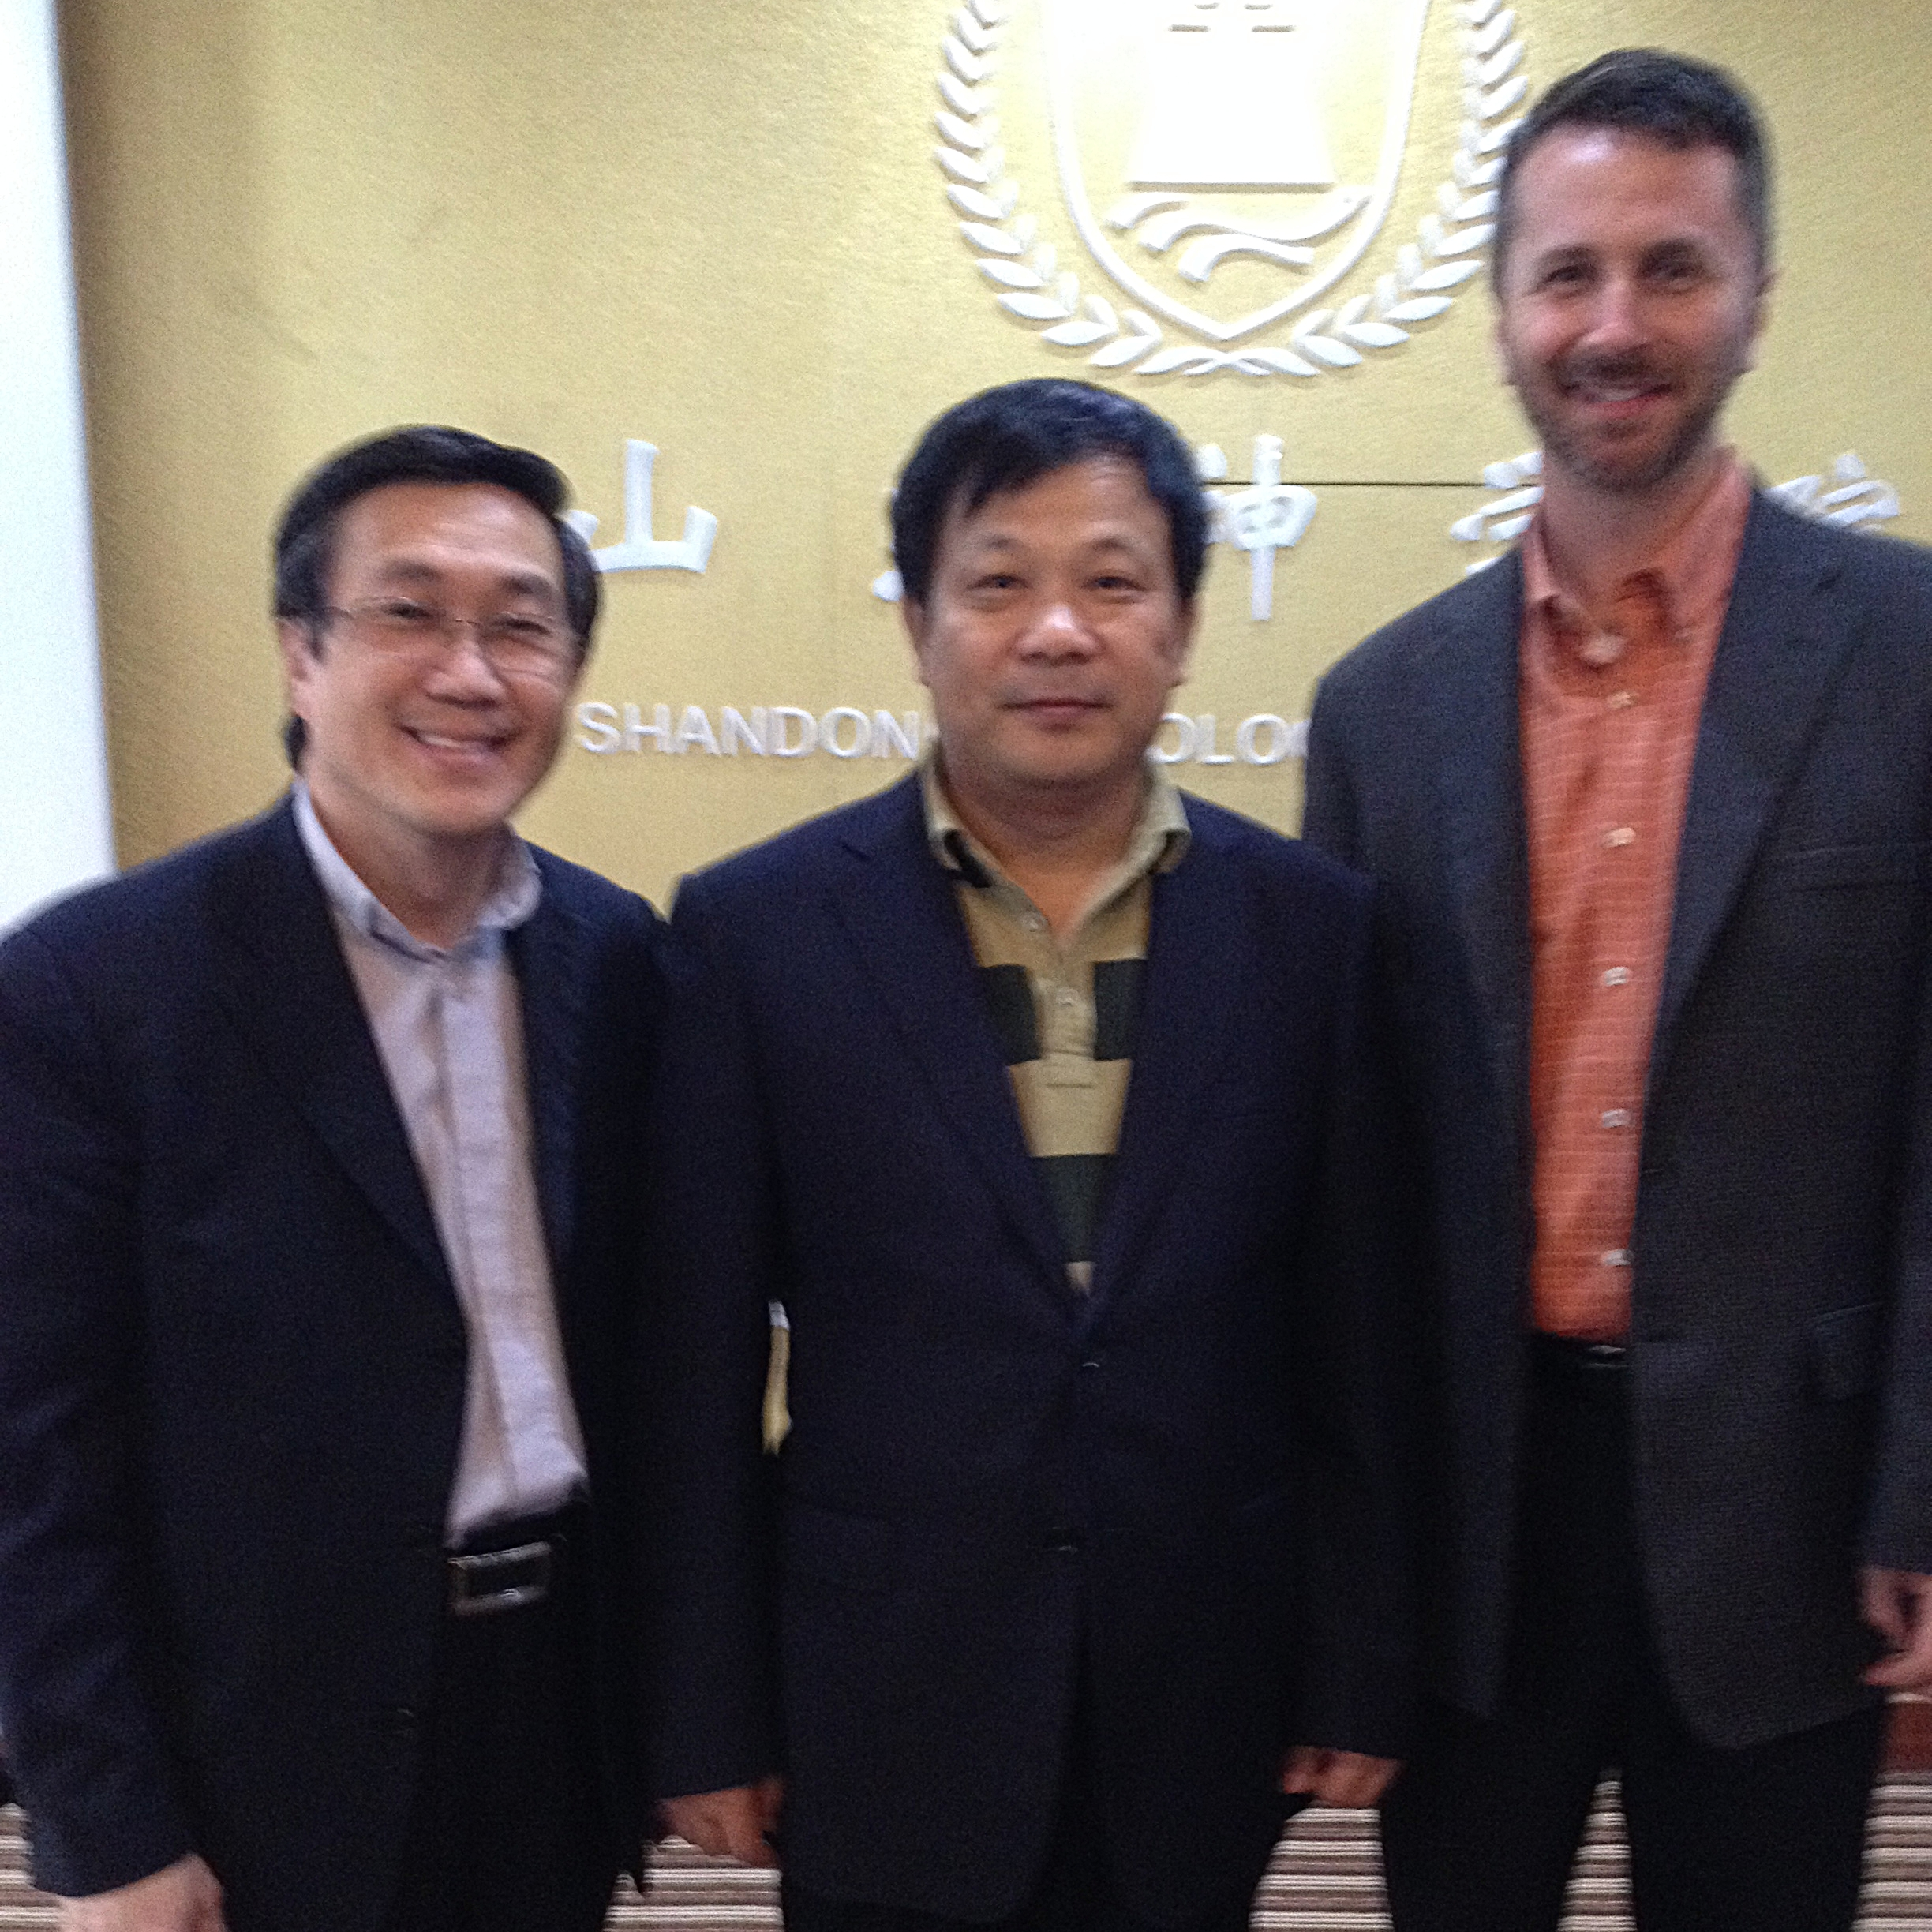 The visionary leader of the Shandong Provincial Christian Council, the Rev. Gao Ming, shown at Shandong Seminary between Peter Lim and Shadyside's Todd Leach